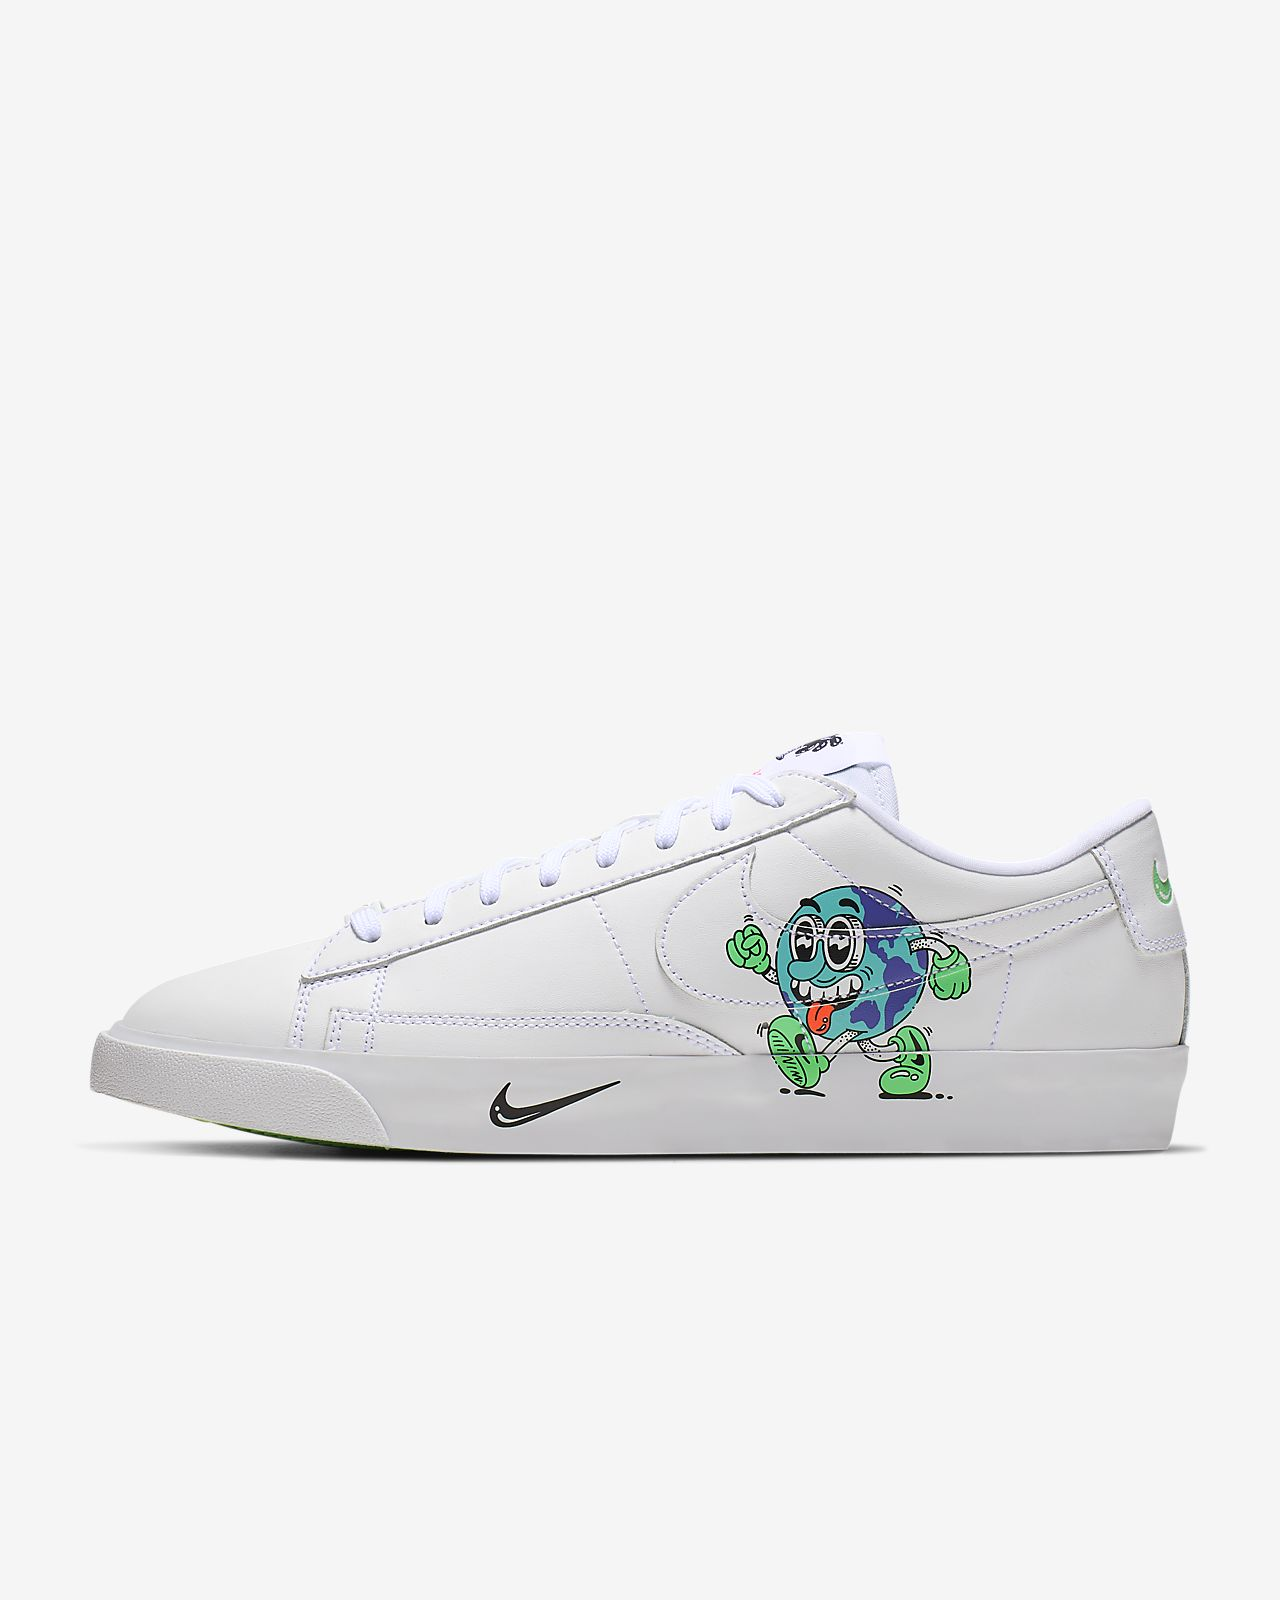 Nike Blazer Low QS Flyleather with at least 50% leather fibre Men's Shoe